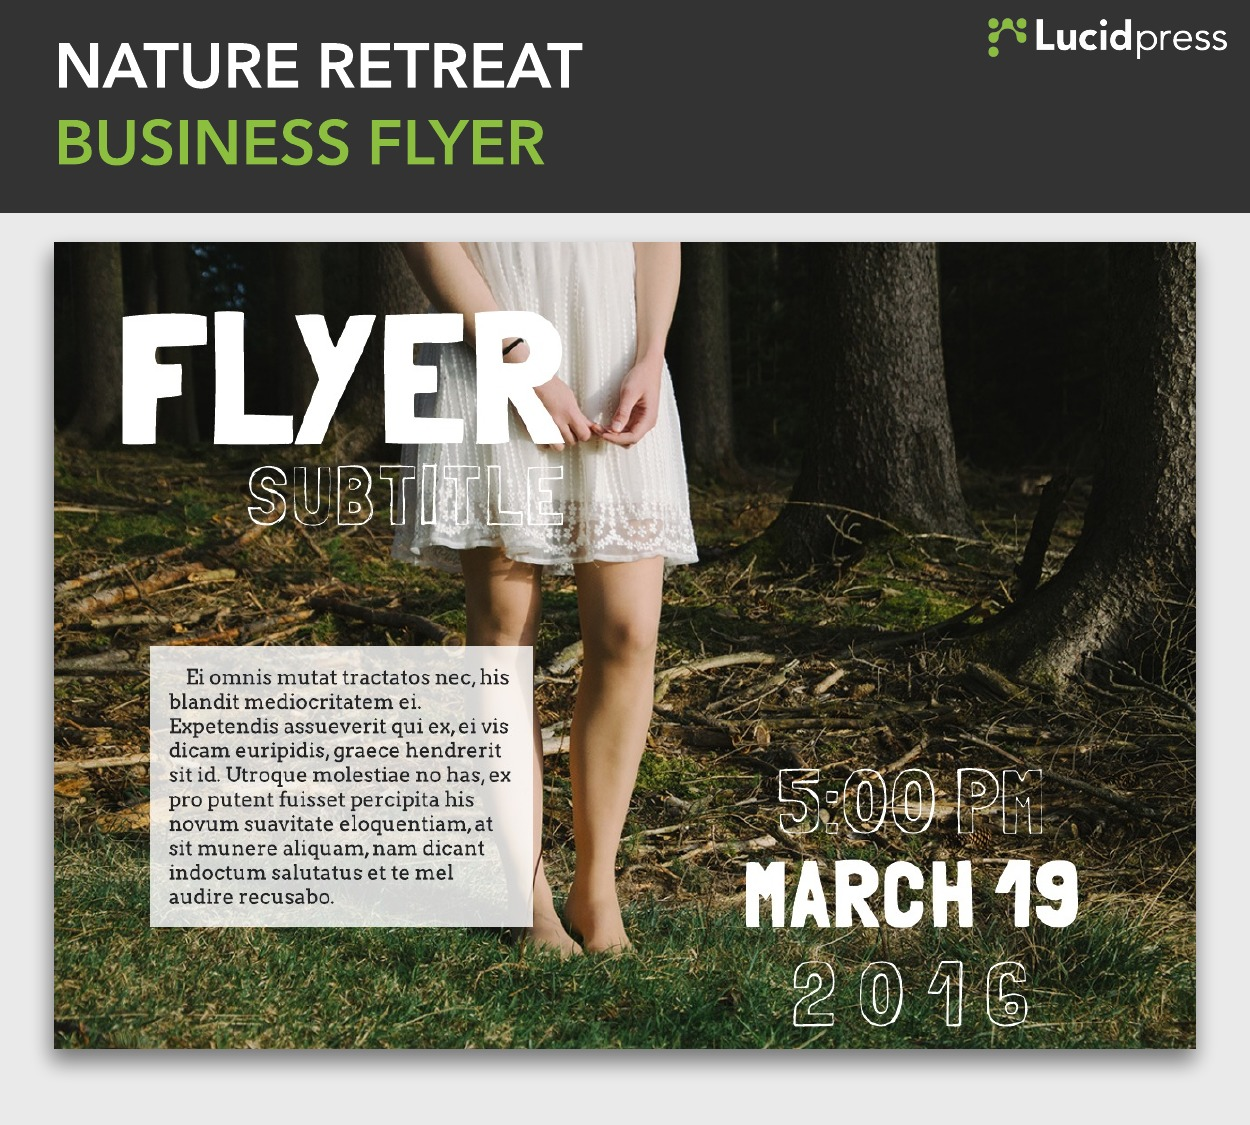 Nature Retreat Business Flyer